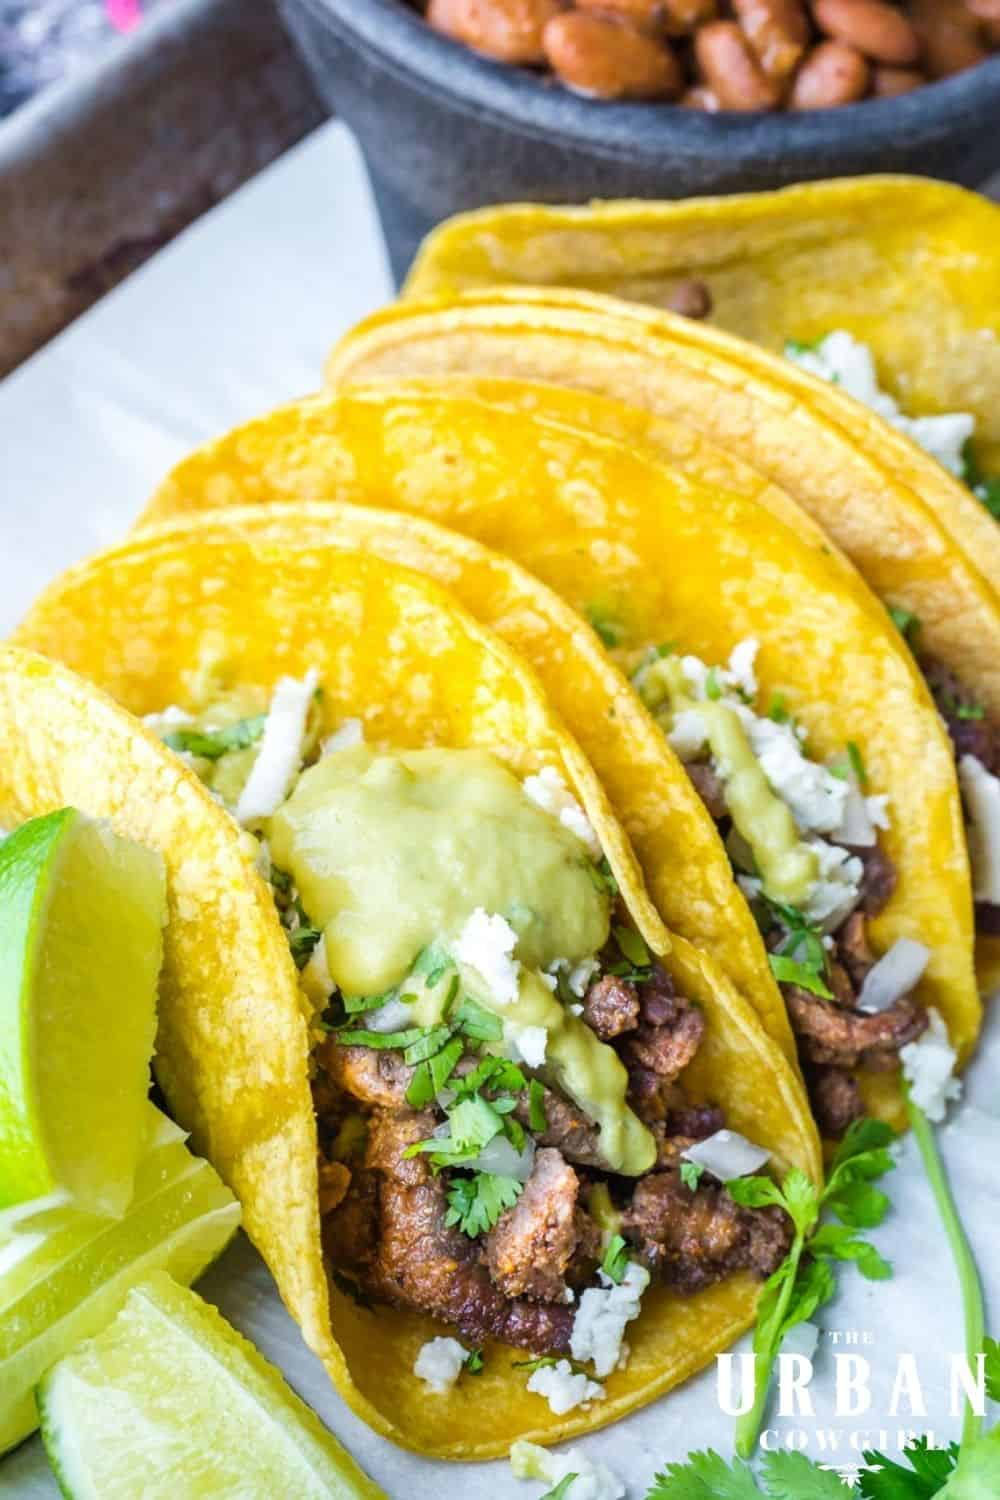 A pan of steak street tacos covered in a creamy jalapeno sauce with cheese and limes